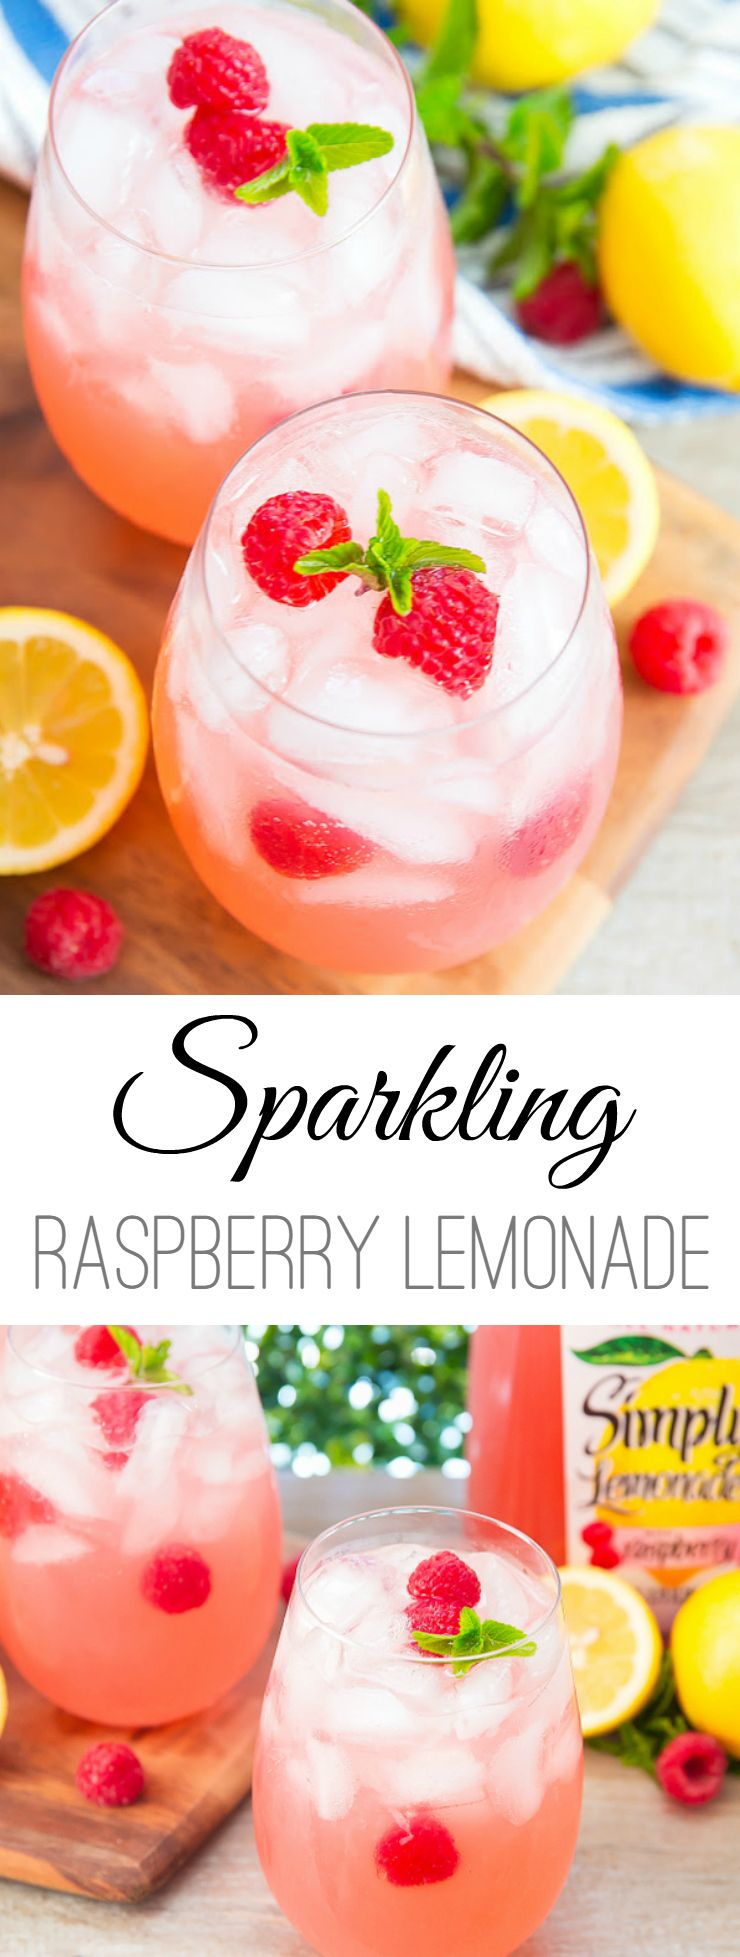 sparking raspberry lemonade cocktails mocktails rezept my recipe posts pinterest. Black Bedroom Furniture Sets. Home Design Ideas